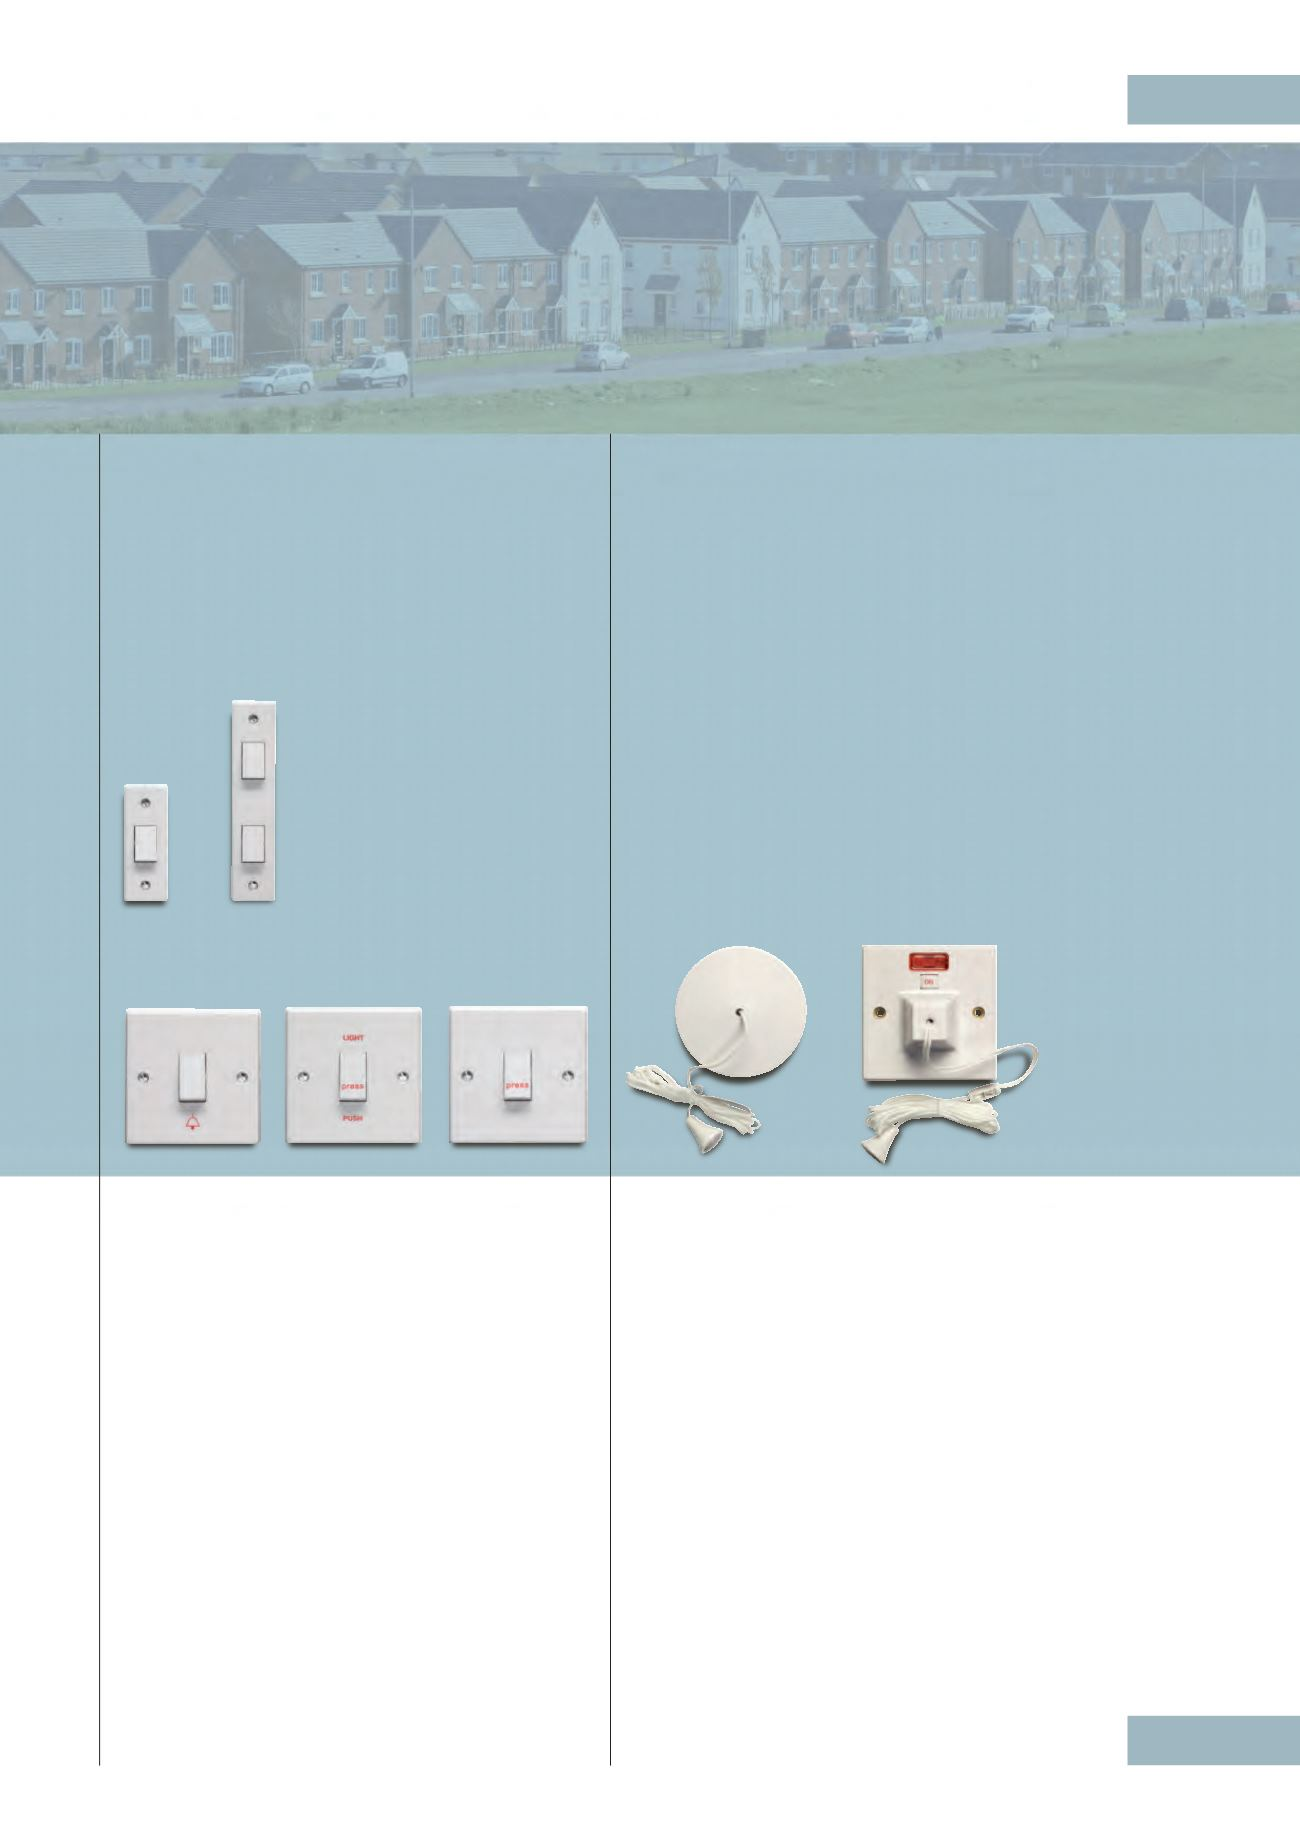 Volex Wiring Accessories Selection Guide on light switch blue, light switch terminals, light dimmer switch, light switch insulation, light switch connections, light switch repair, light switch operation, light switch paint, light switch socket, light switches, light switch breakers, light switch grounding, light switch three, light switch painting, light switch parts, light switch interior, light bulb, light switch installation, light switch lamps, light switch electrical,